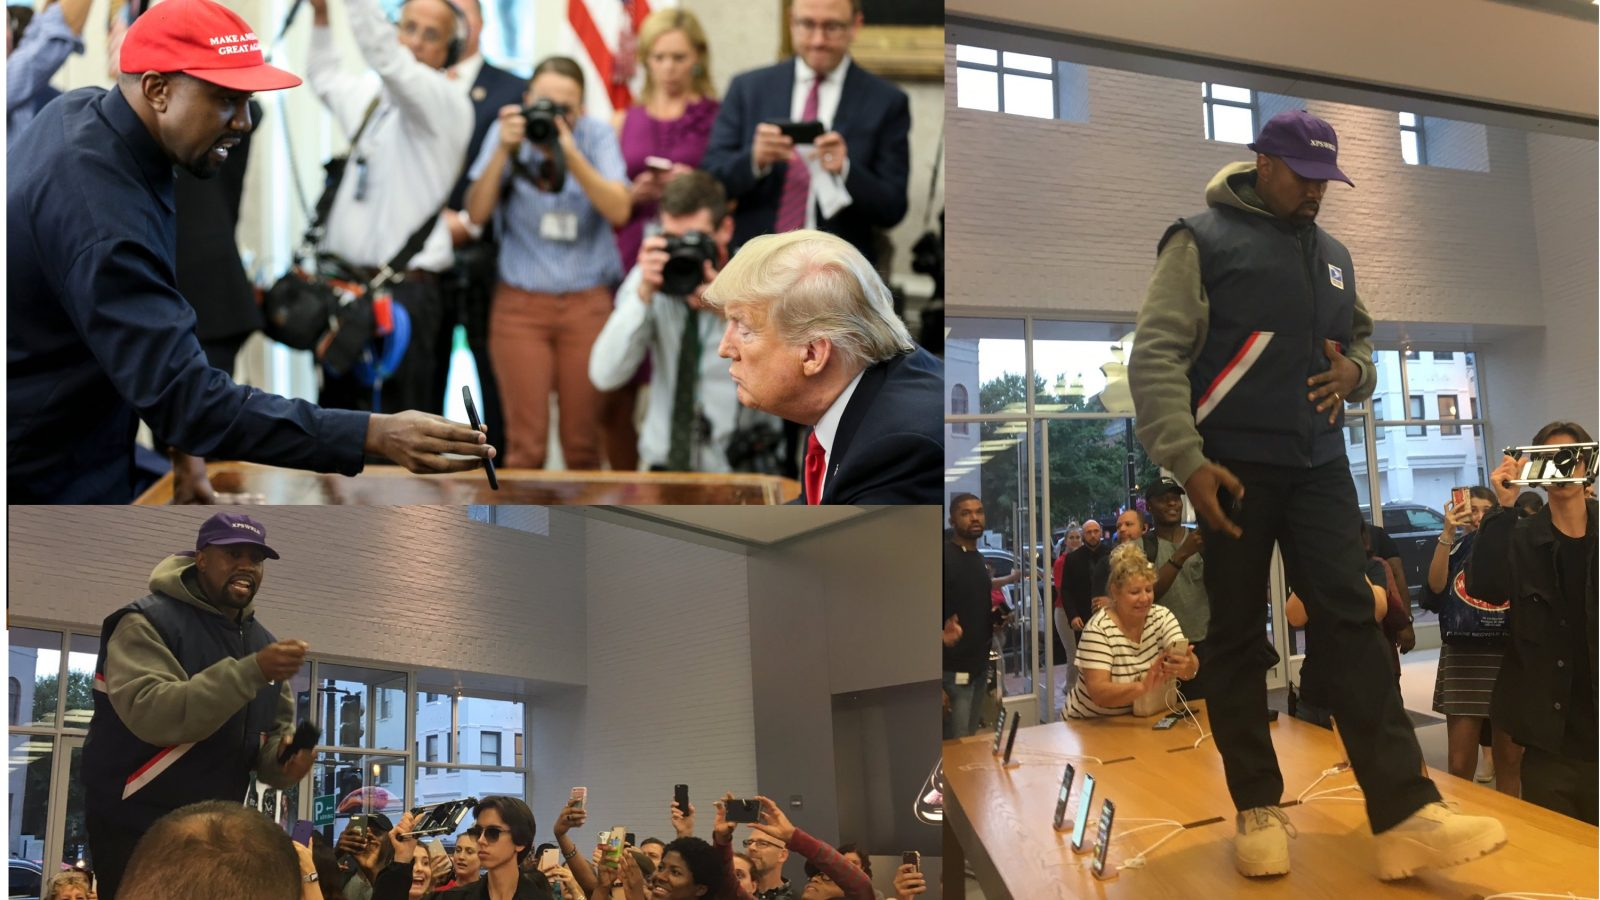 Kanye West Apple Store Trip Meteting With Trump And More 9to5mac